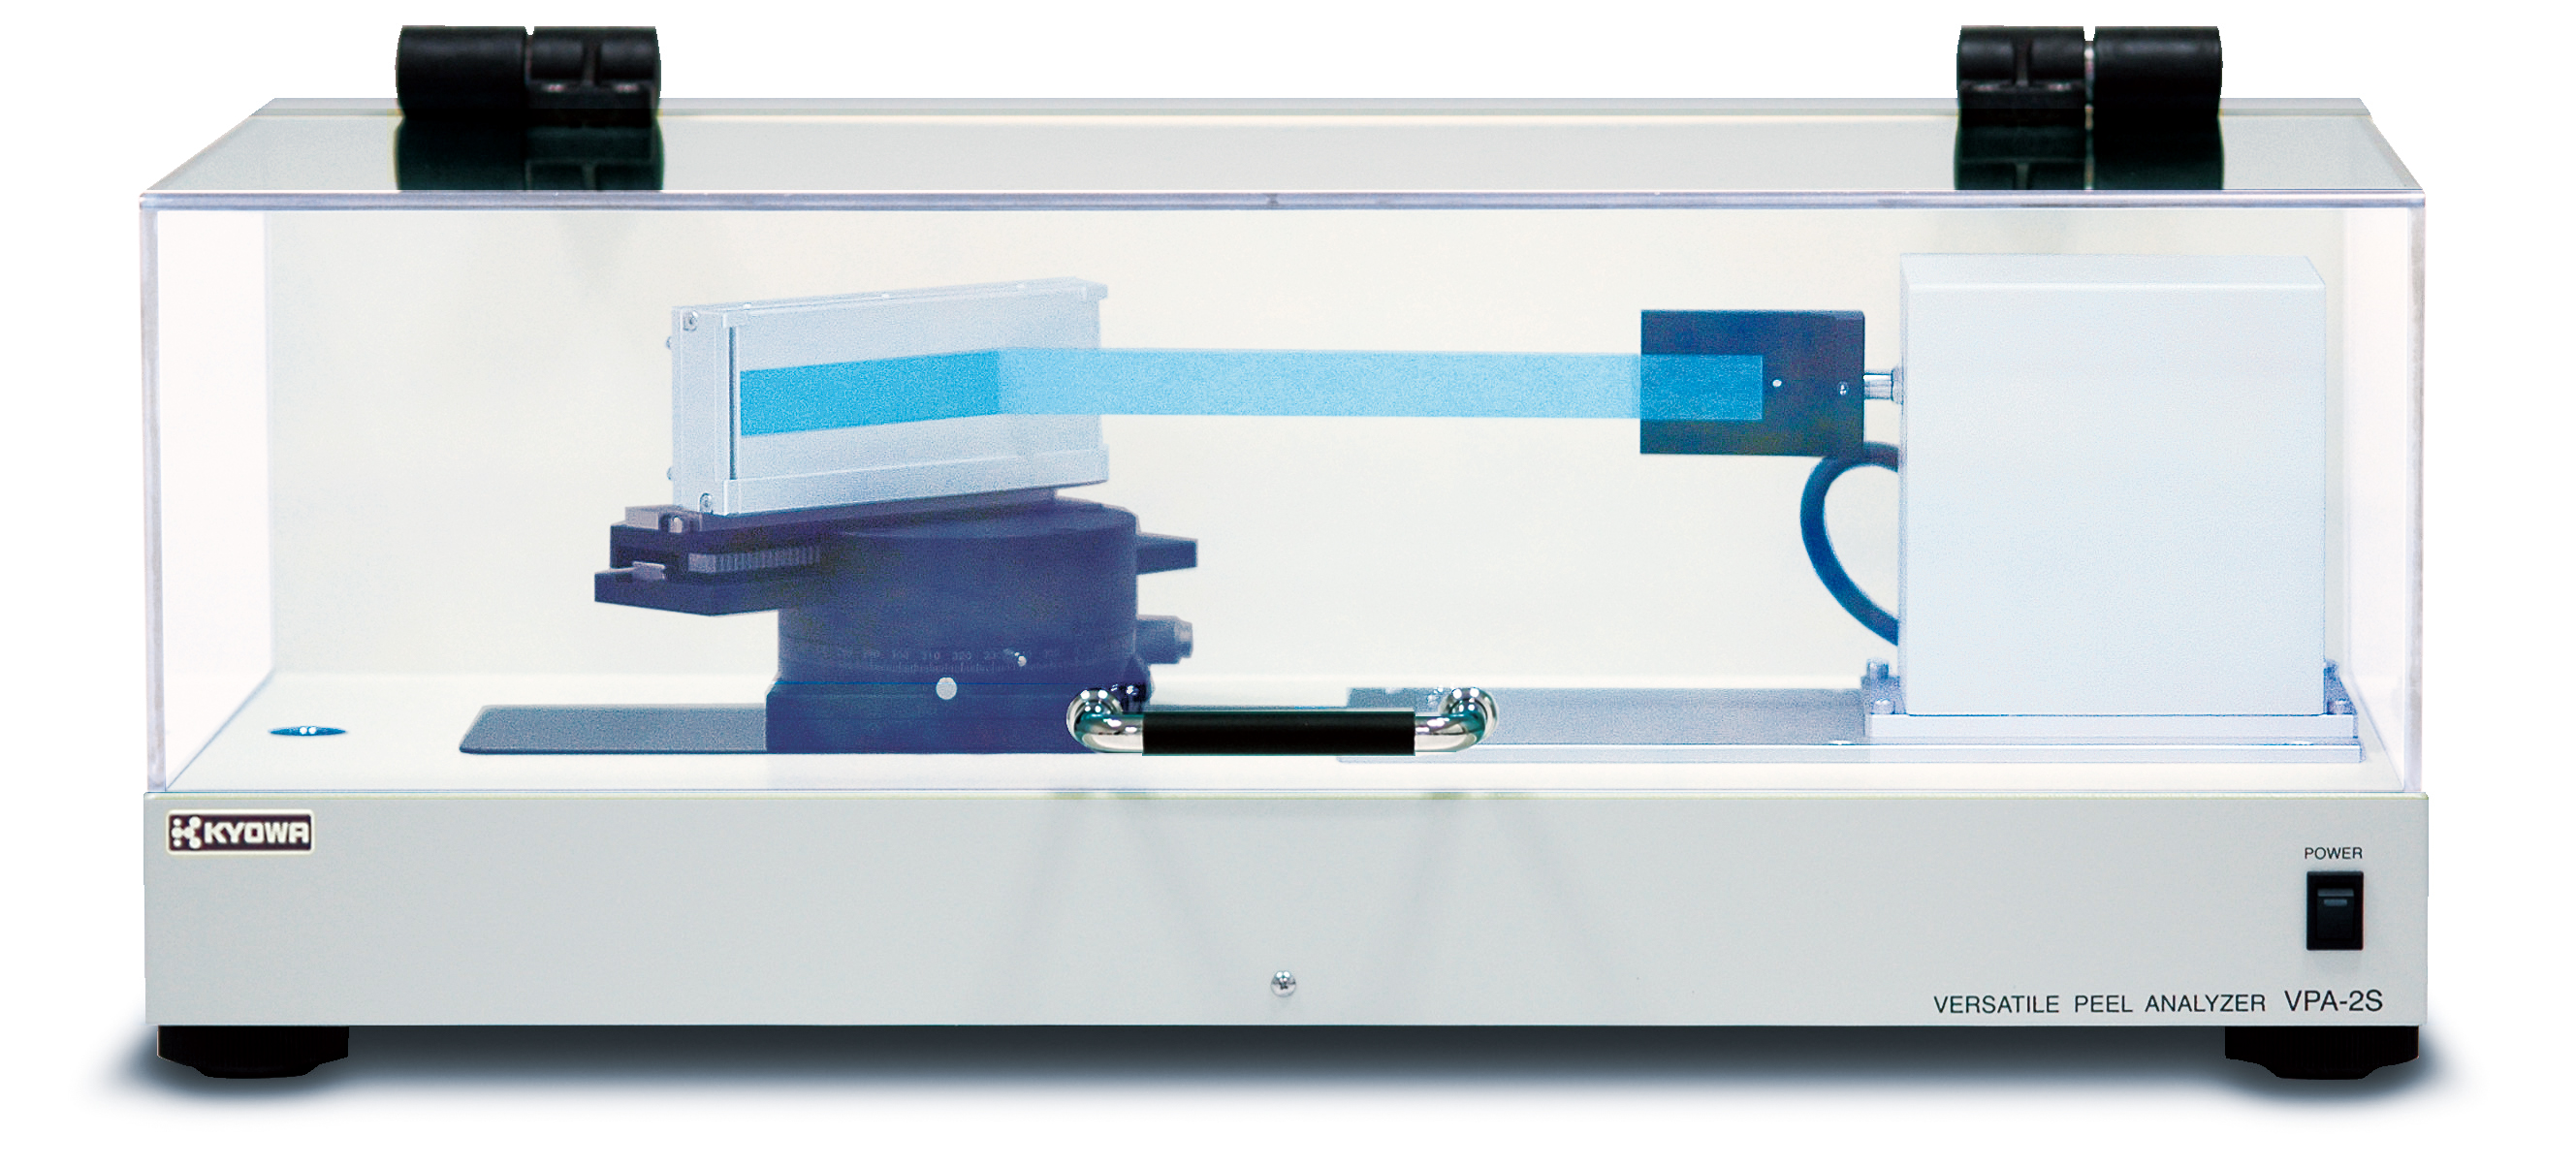 Versatile Peel Analyzer, VPA-2S